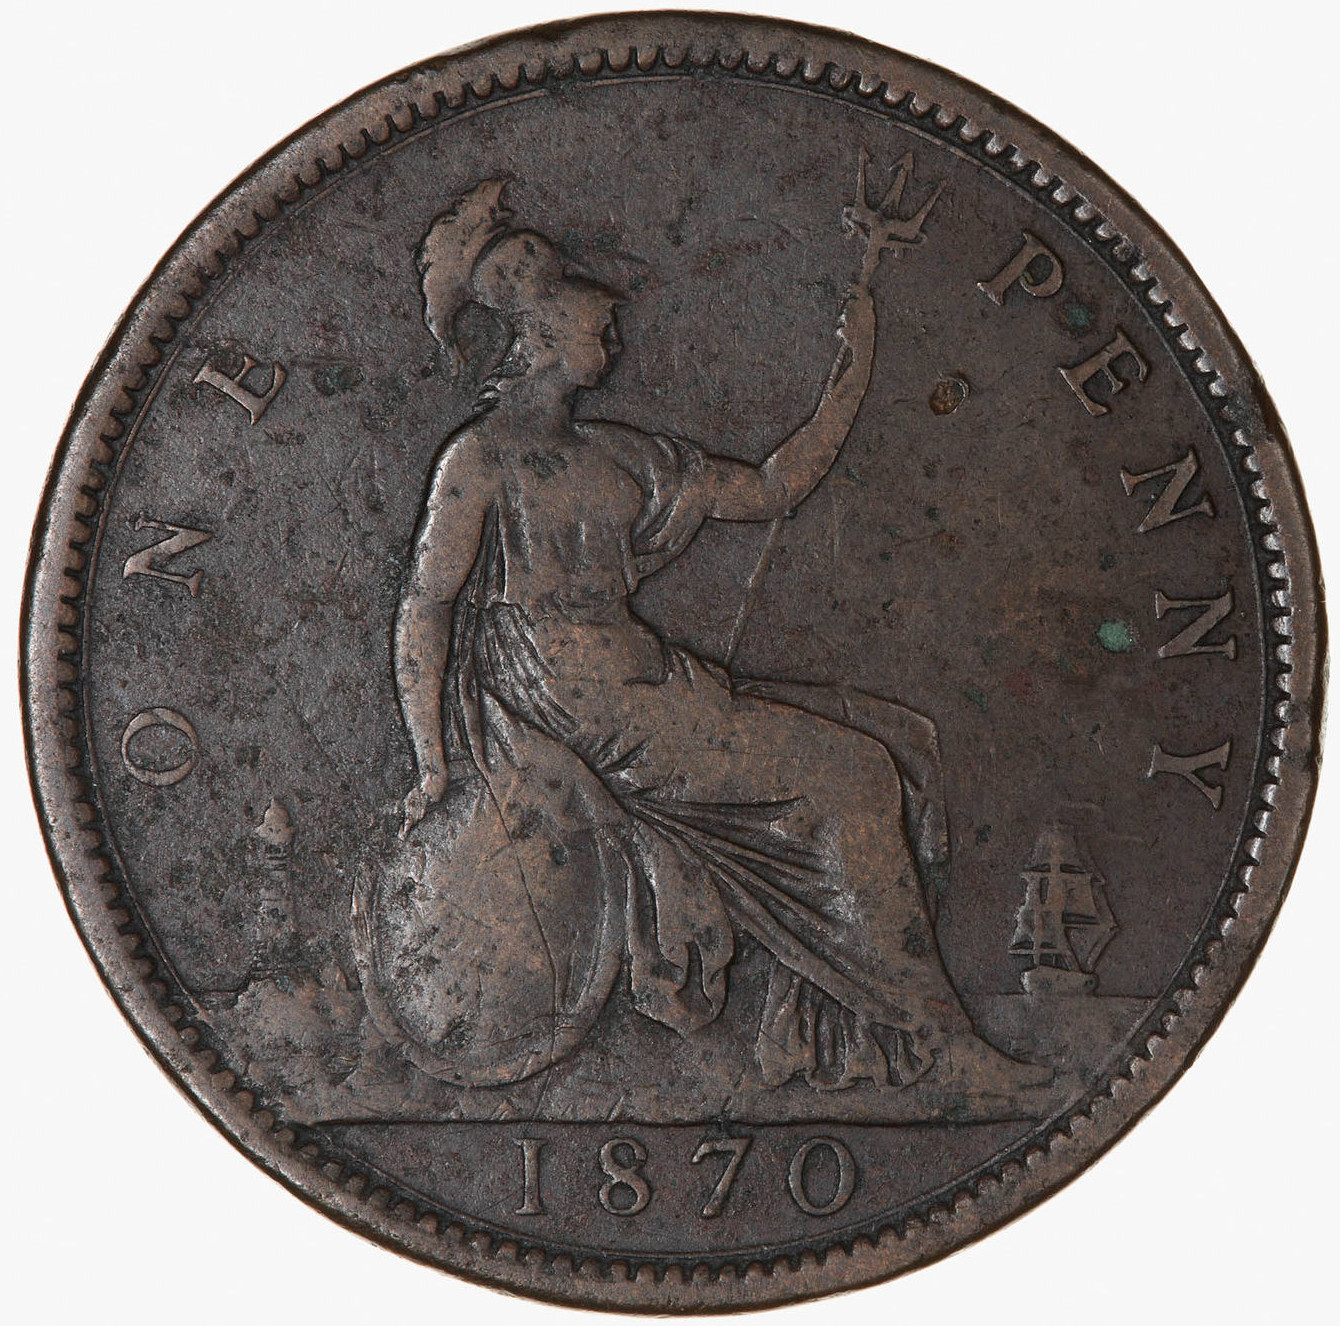 Penny 1870: Photo Coin - Penny, Queen Victoria, Great Britain, 1870